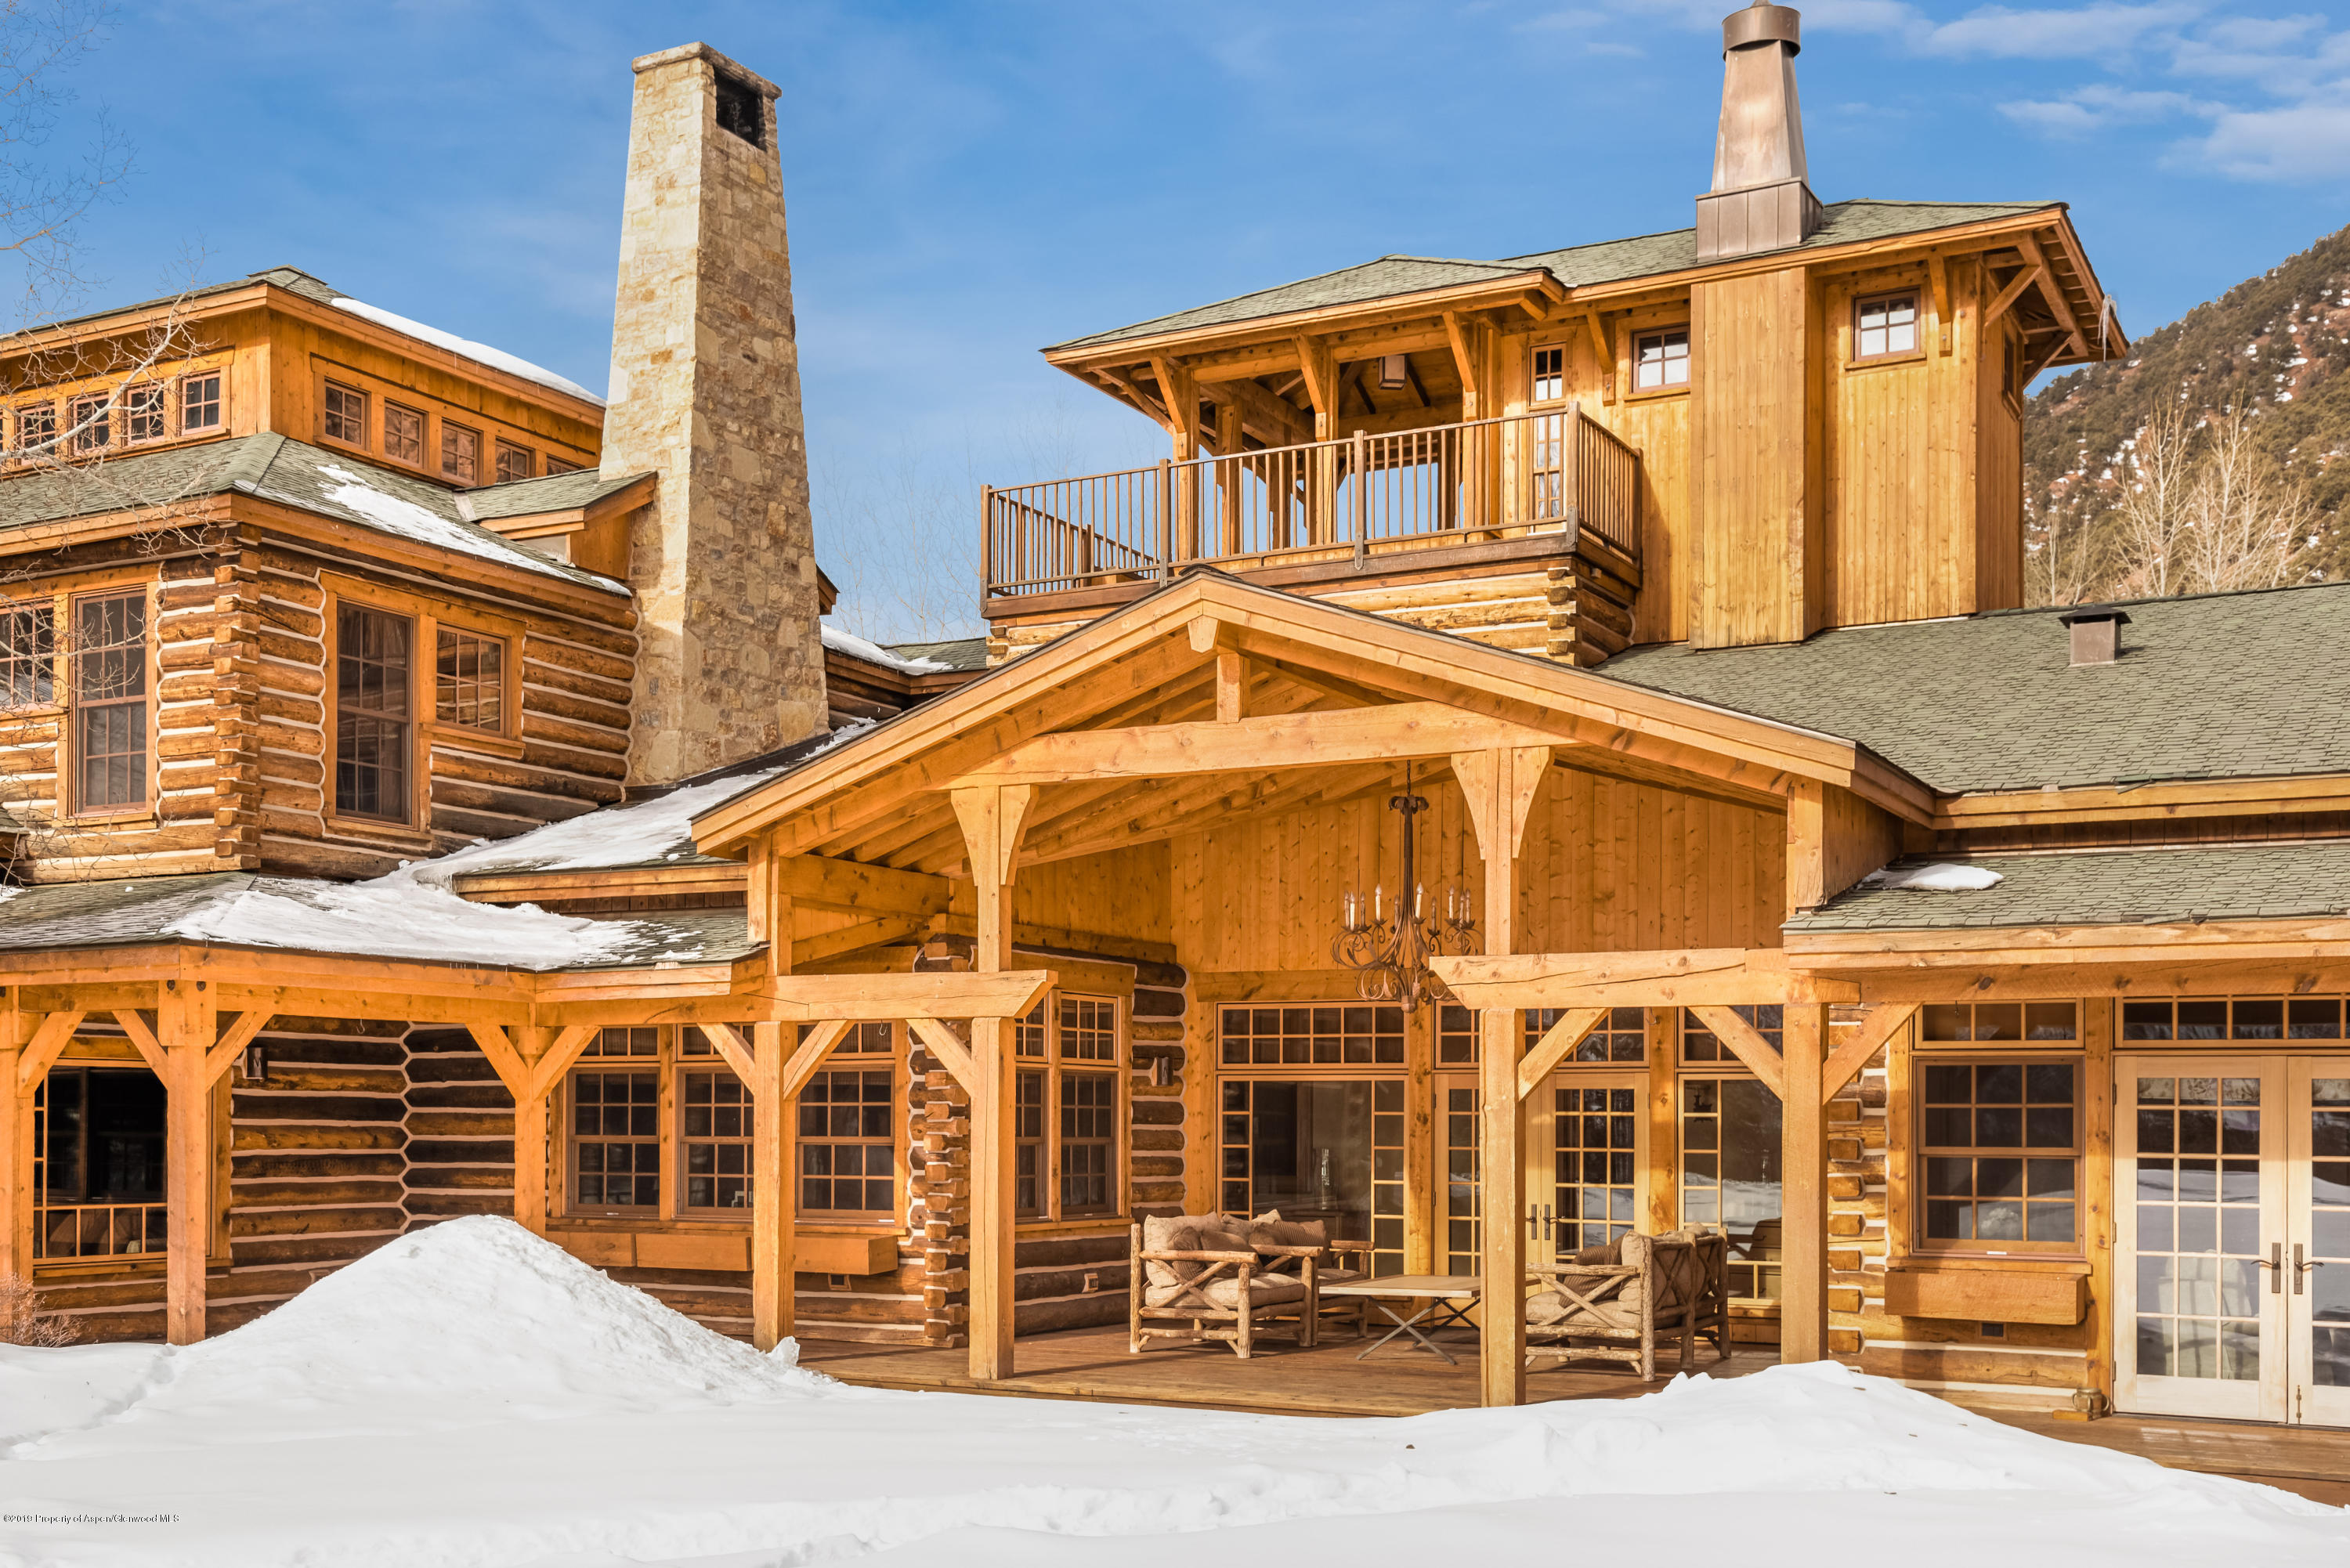 MLS# 135595 - 77 - 50 E River Ranch Road, Snowmass, CO 81654